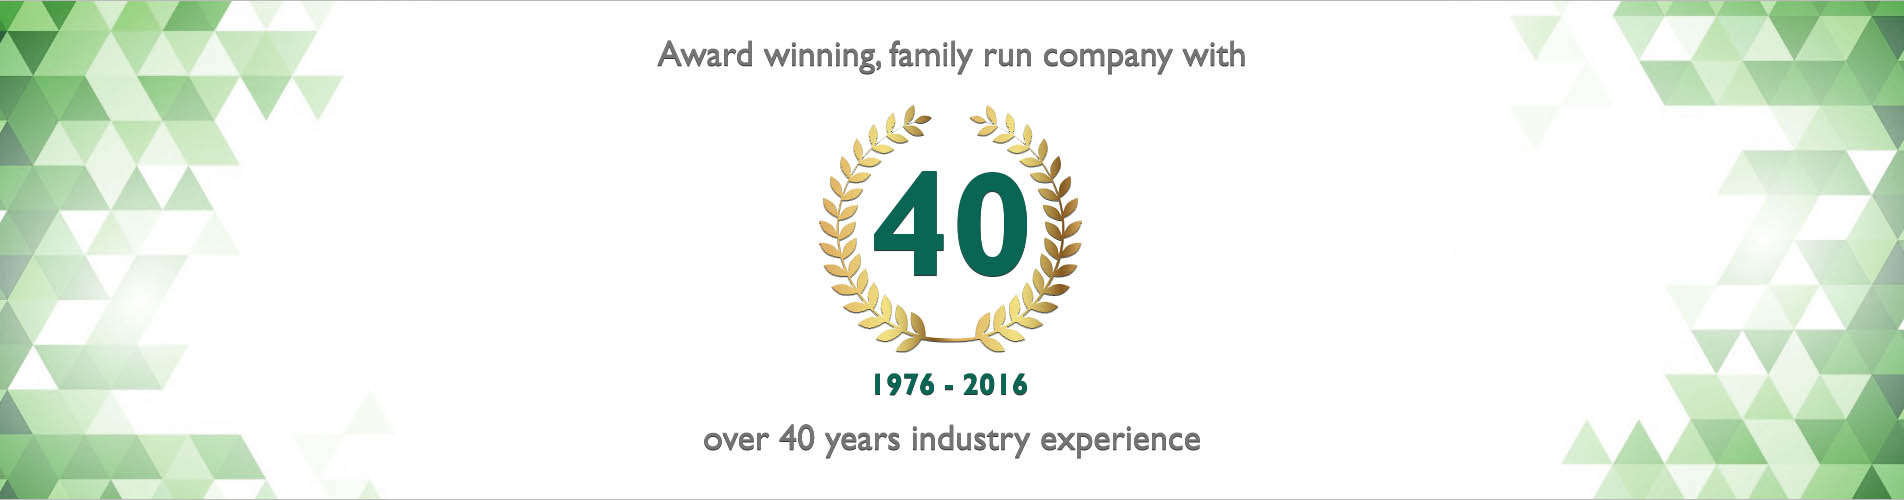 Award winning family run business with over 40 years industry experience